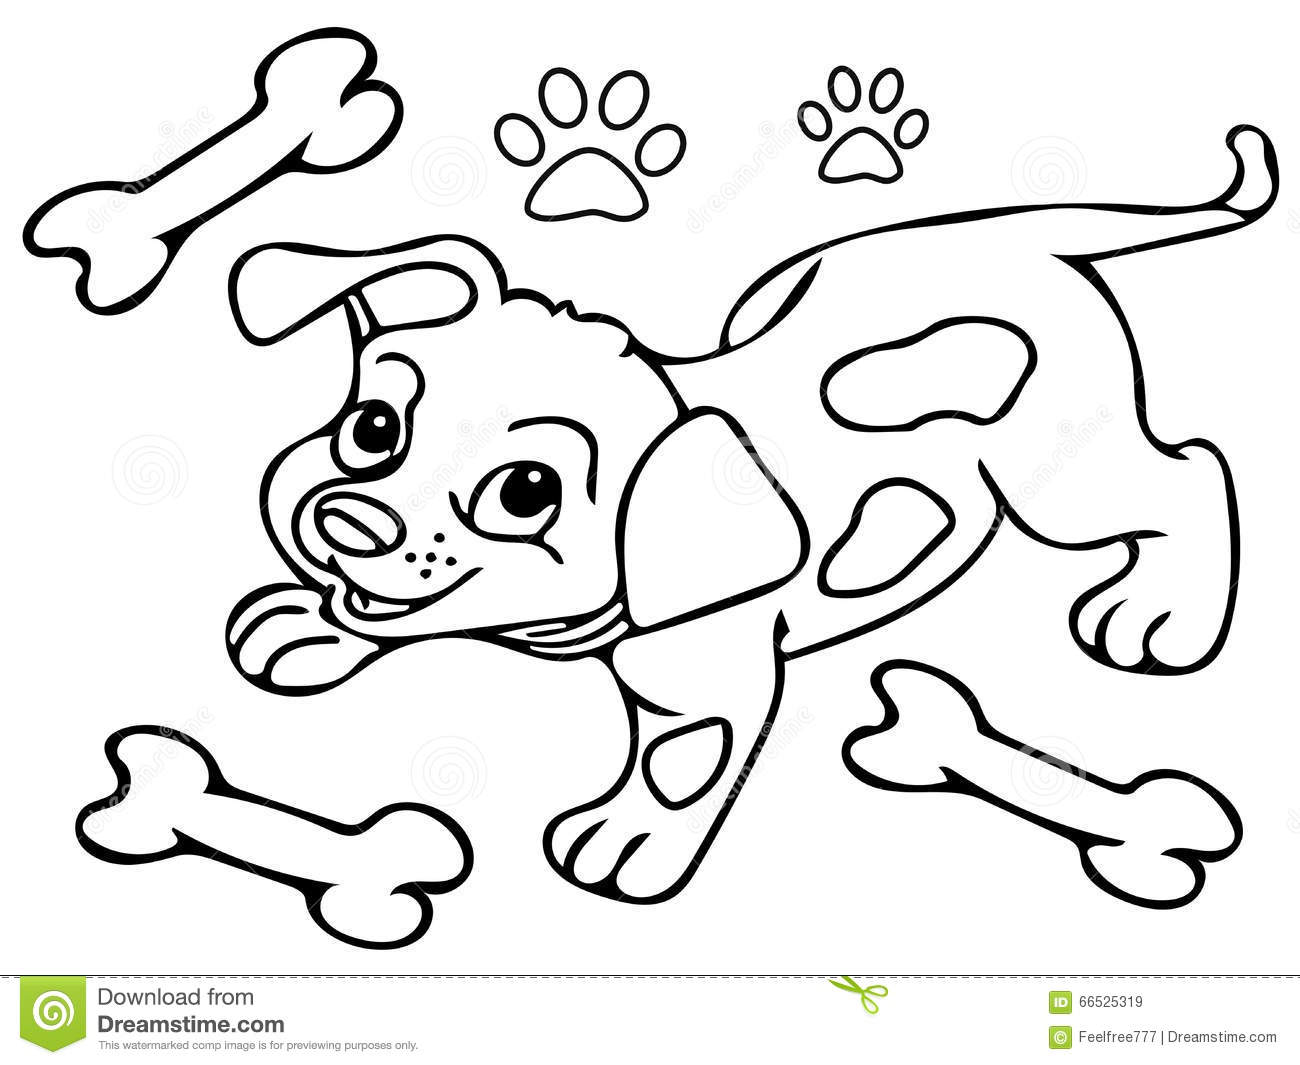 Royalty free stock images funny dog coloring pages image for Copyright free coloring pages